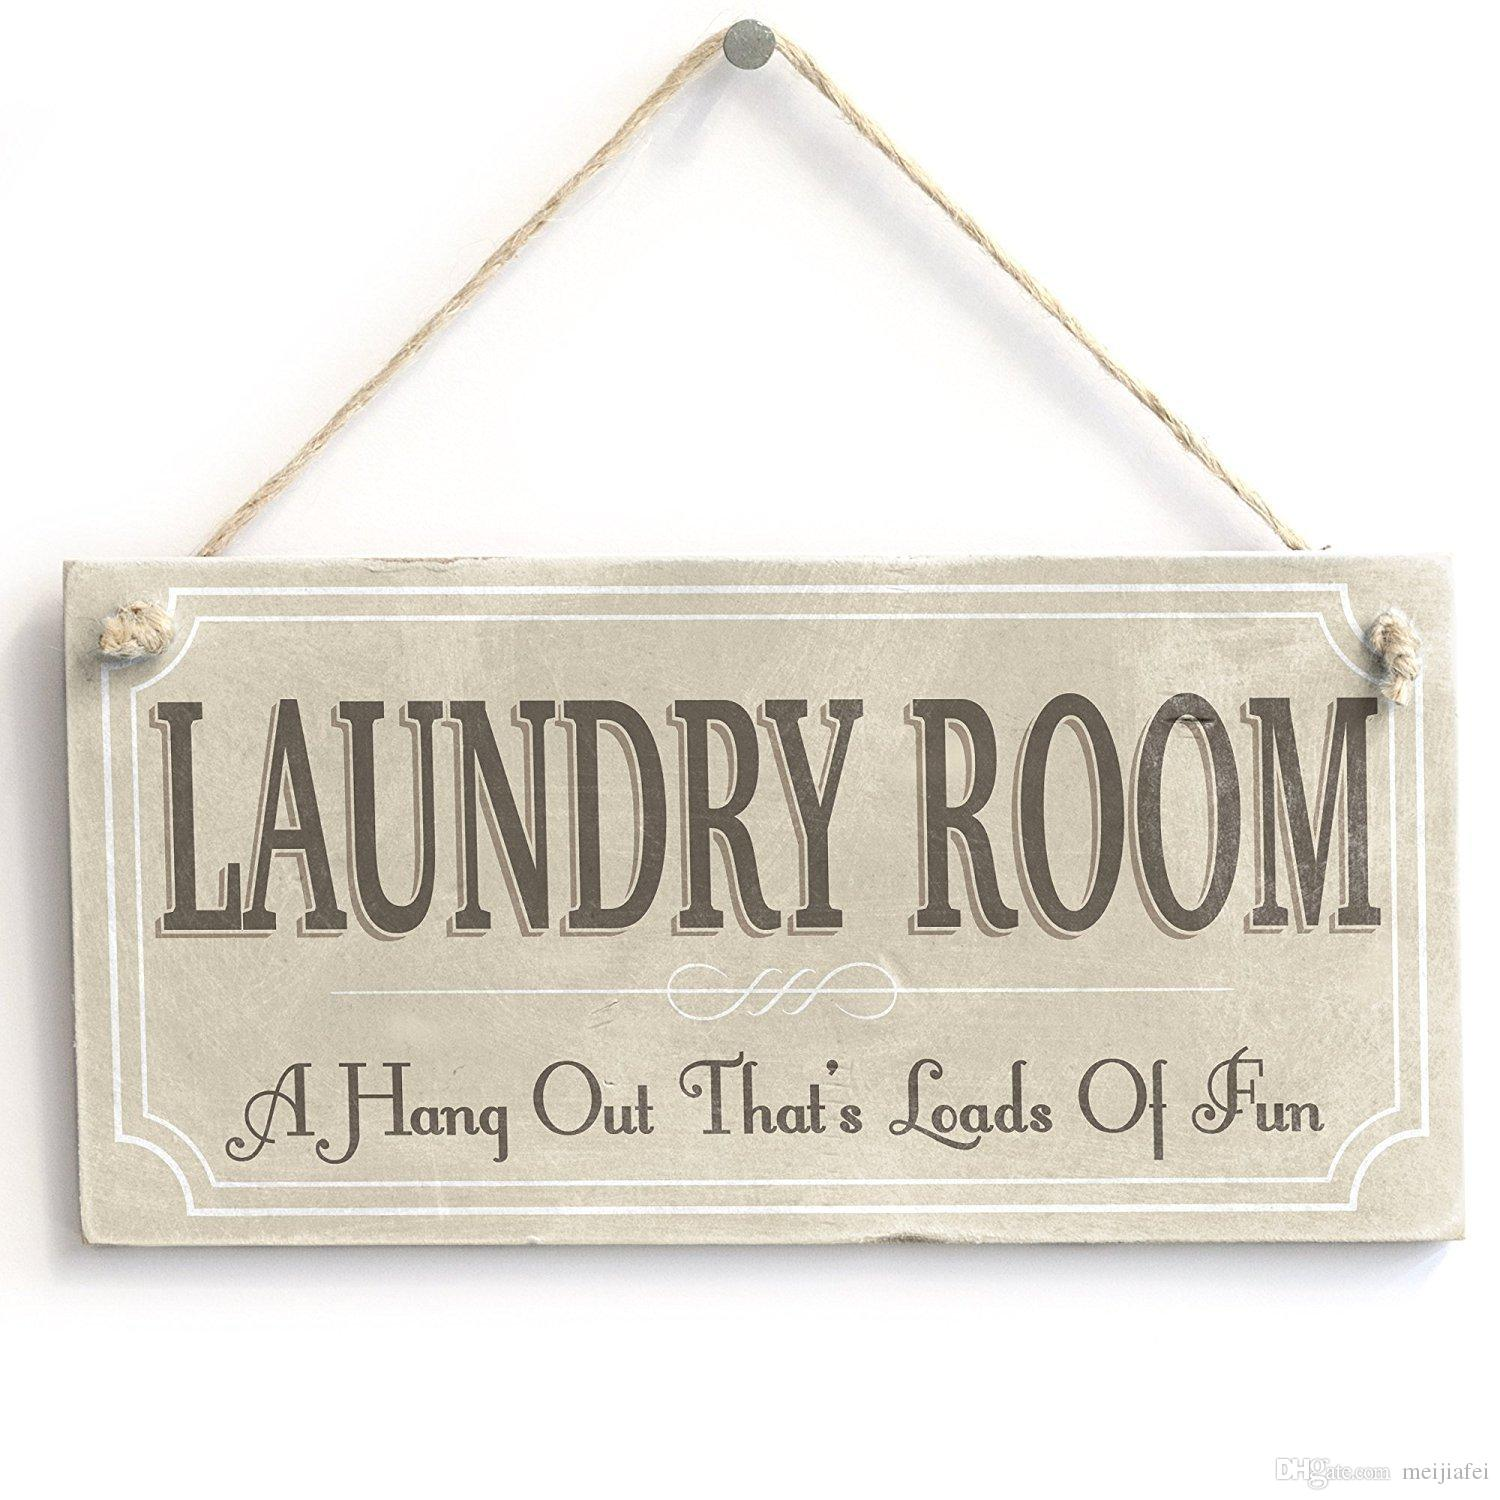 The Laundry Room Loads Of Fun Sign Meijiafei Laundry Room A Hangout Thats Loads Of Fun  Rustic